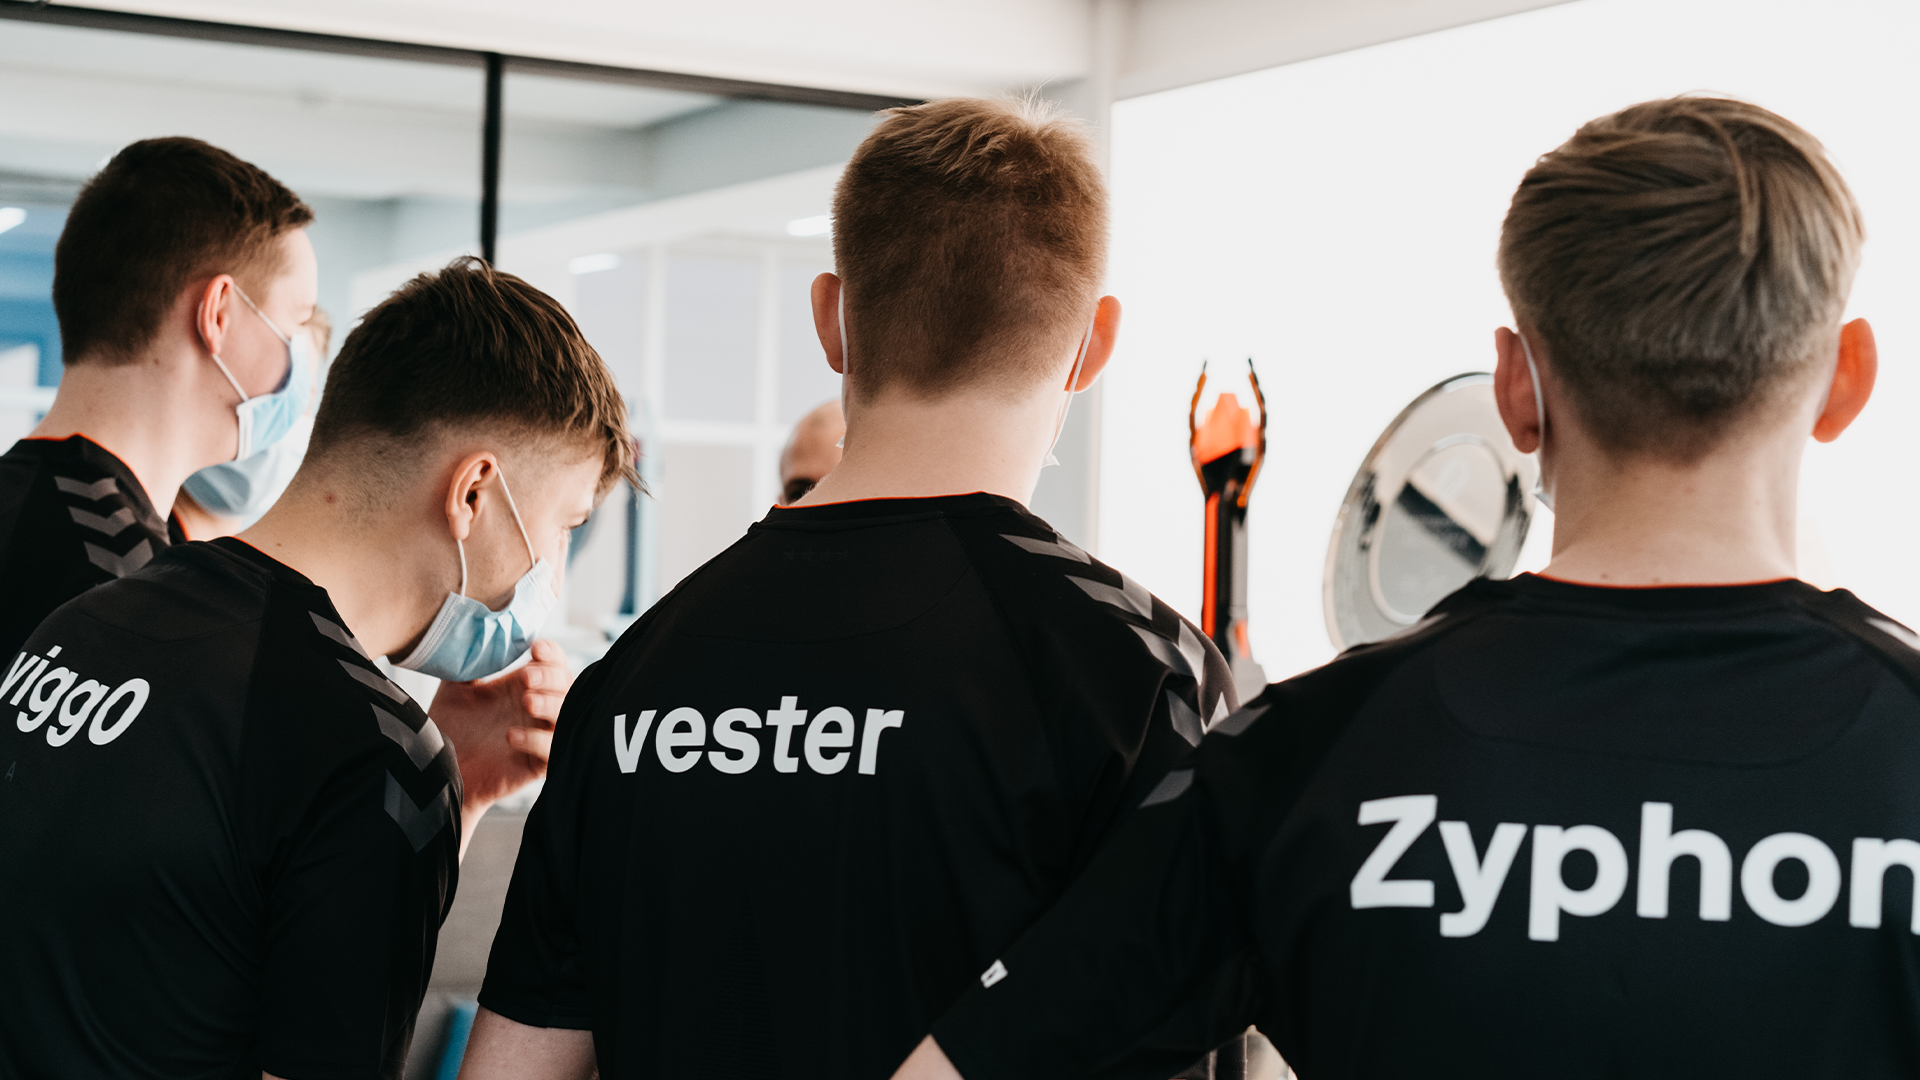 Astralis Talent And Zyphon Parts Ways